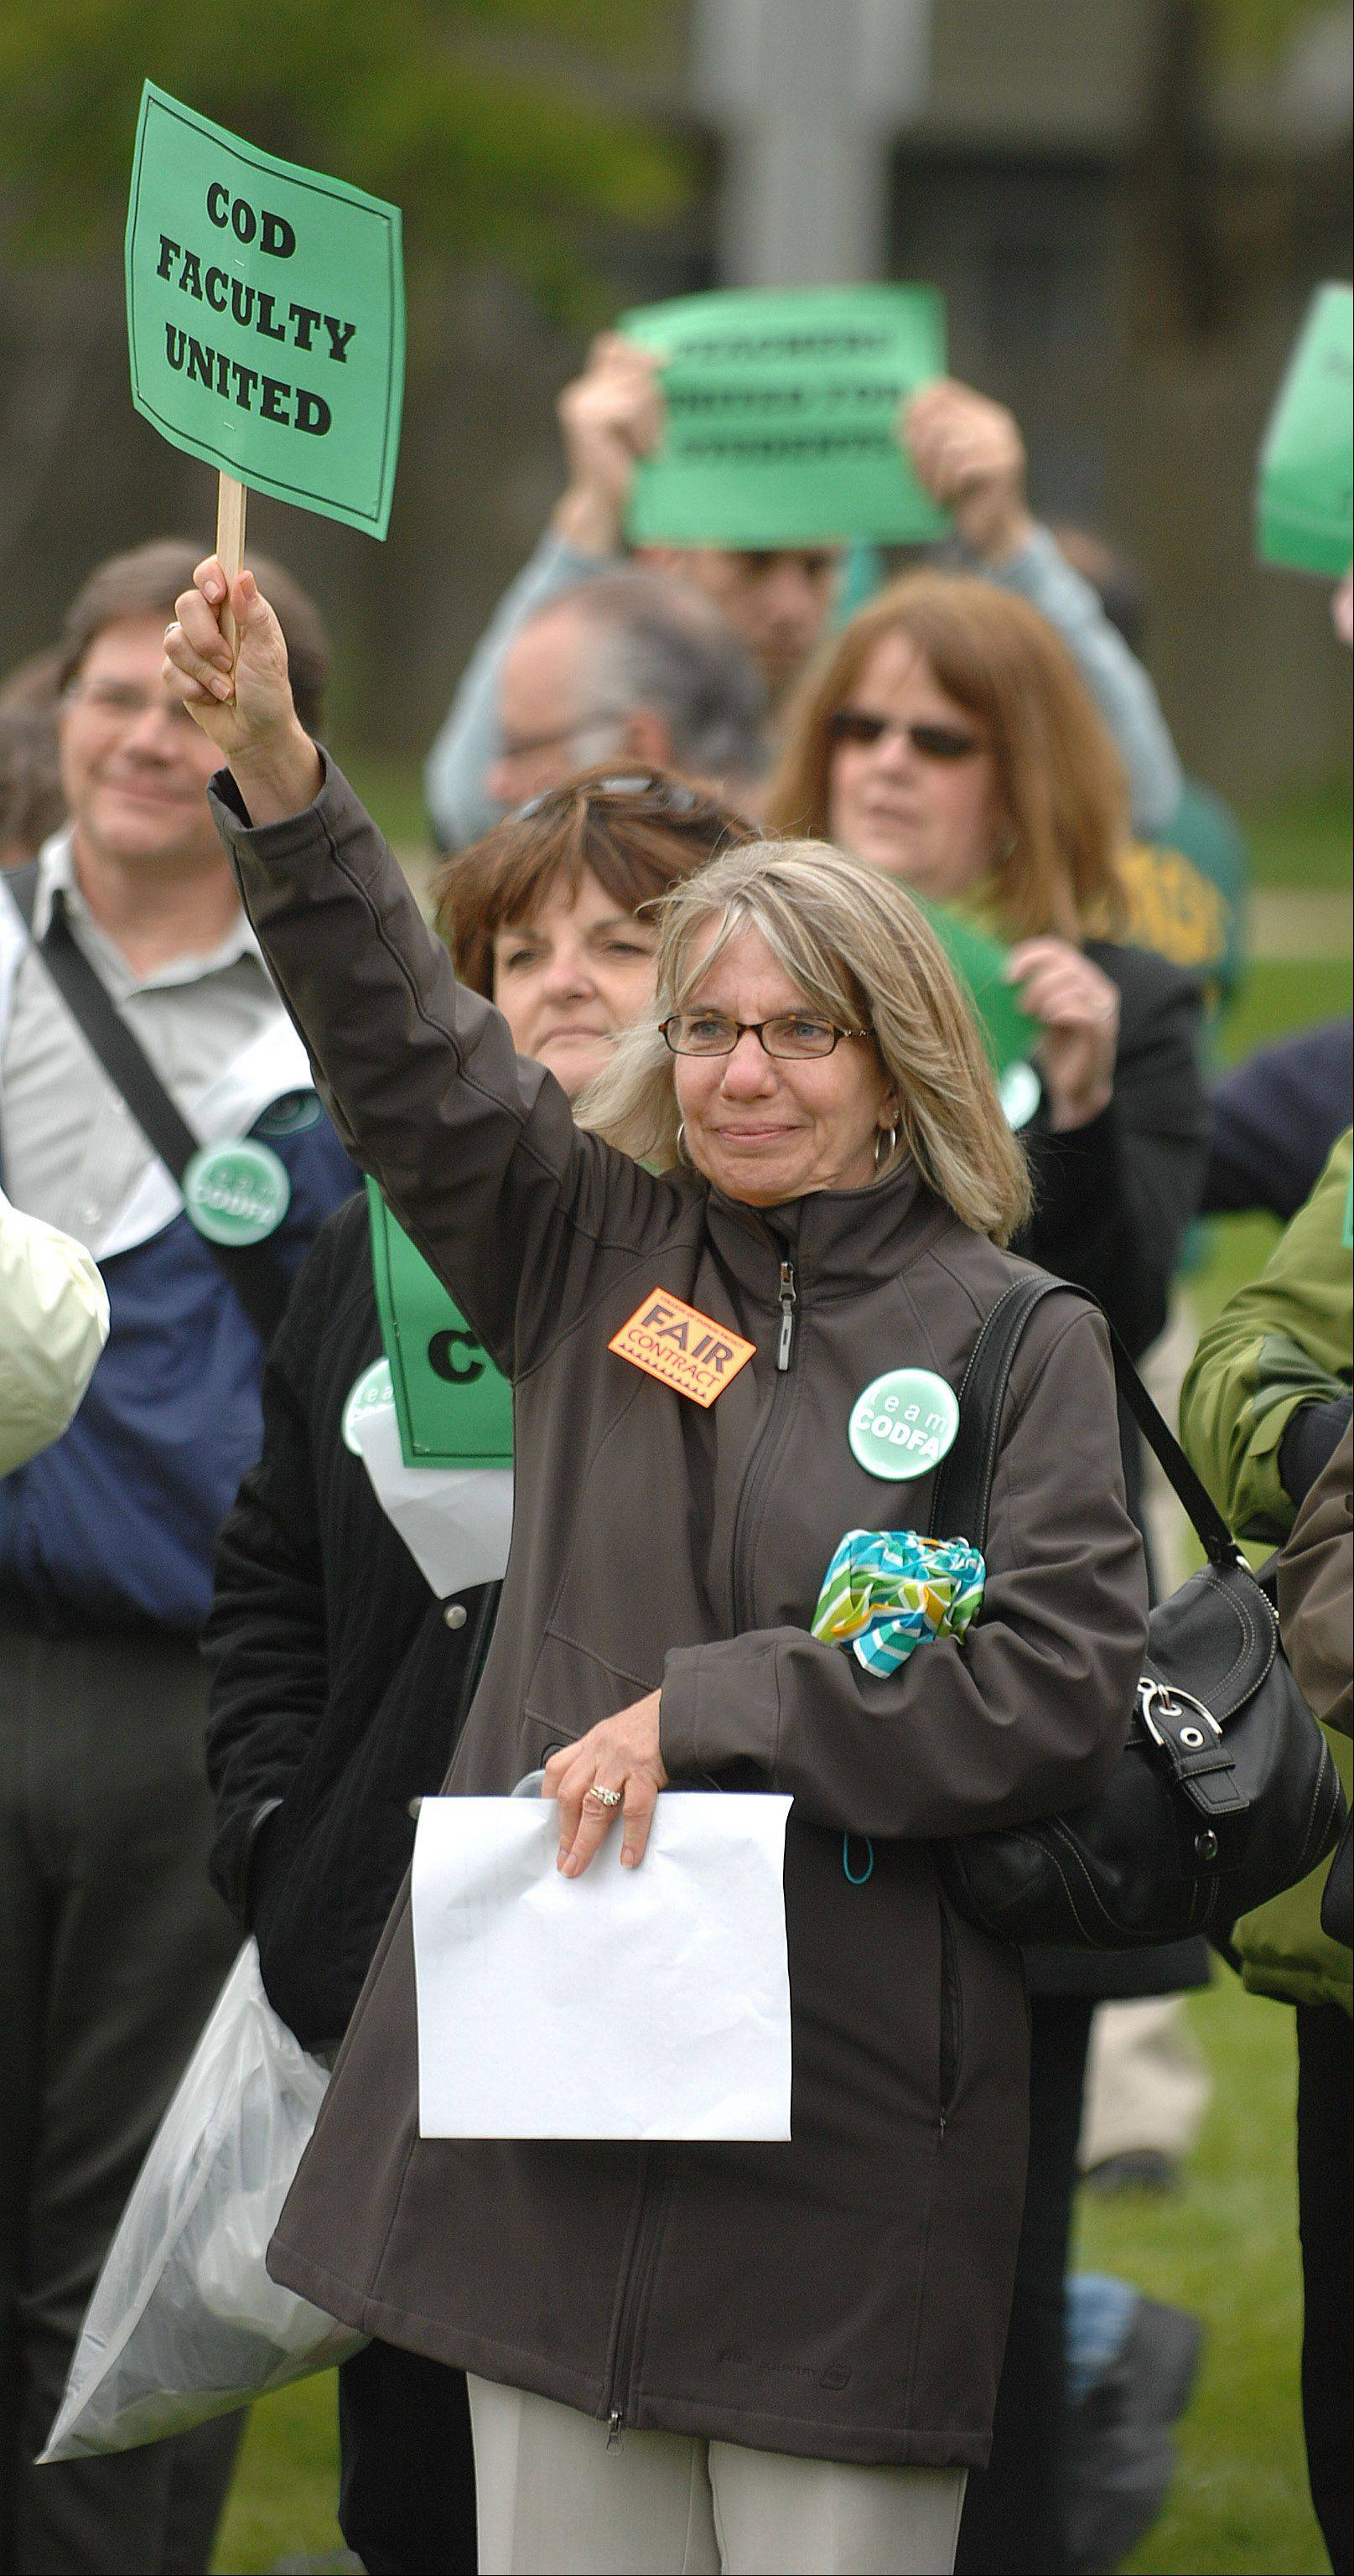 College of DuPage faculty member Nancy Fuelner shows her support for the faculty association's bargaining team during a rally at Panfish Park in Glen Ellyn Thursday.